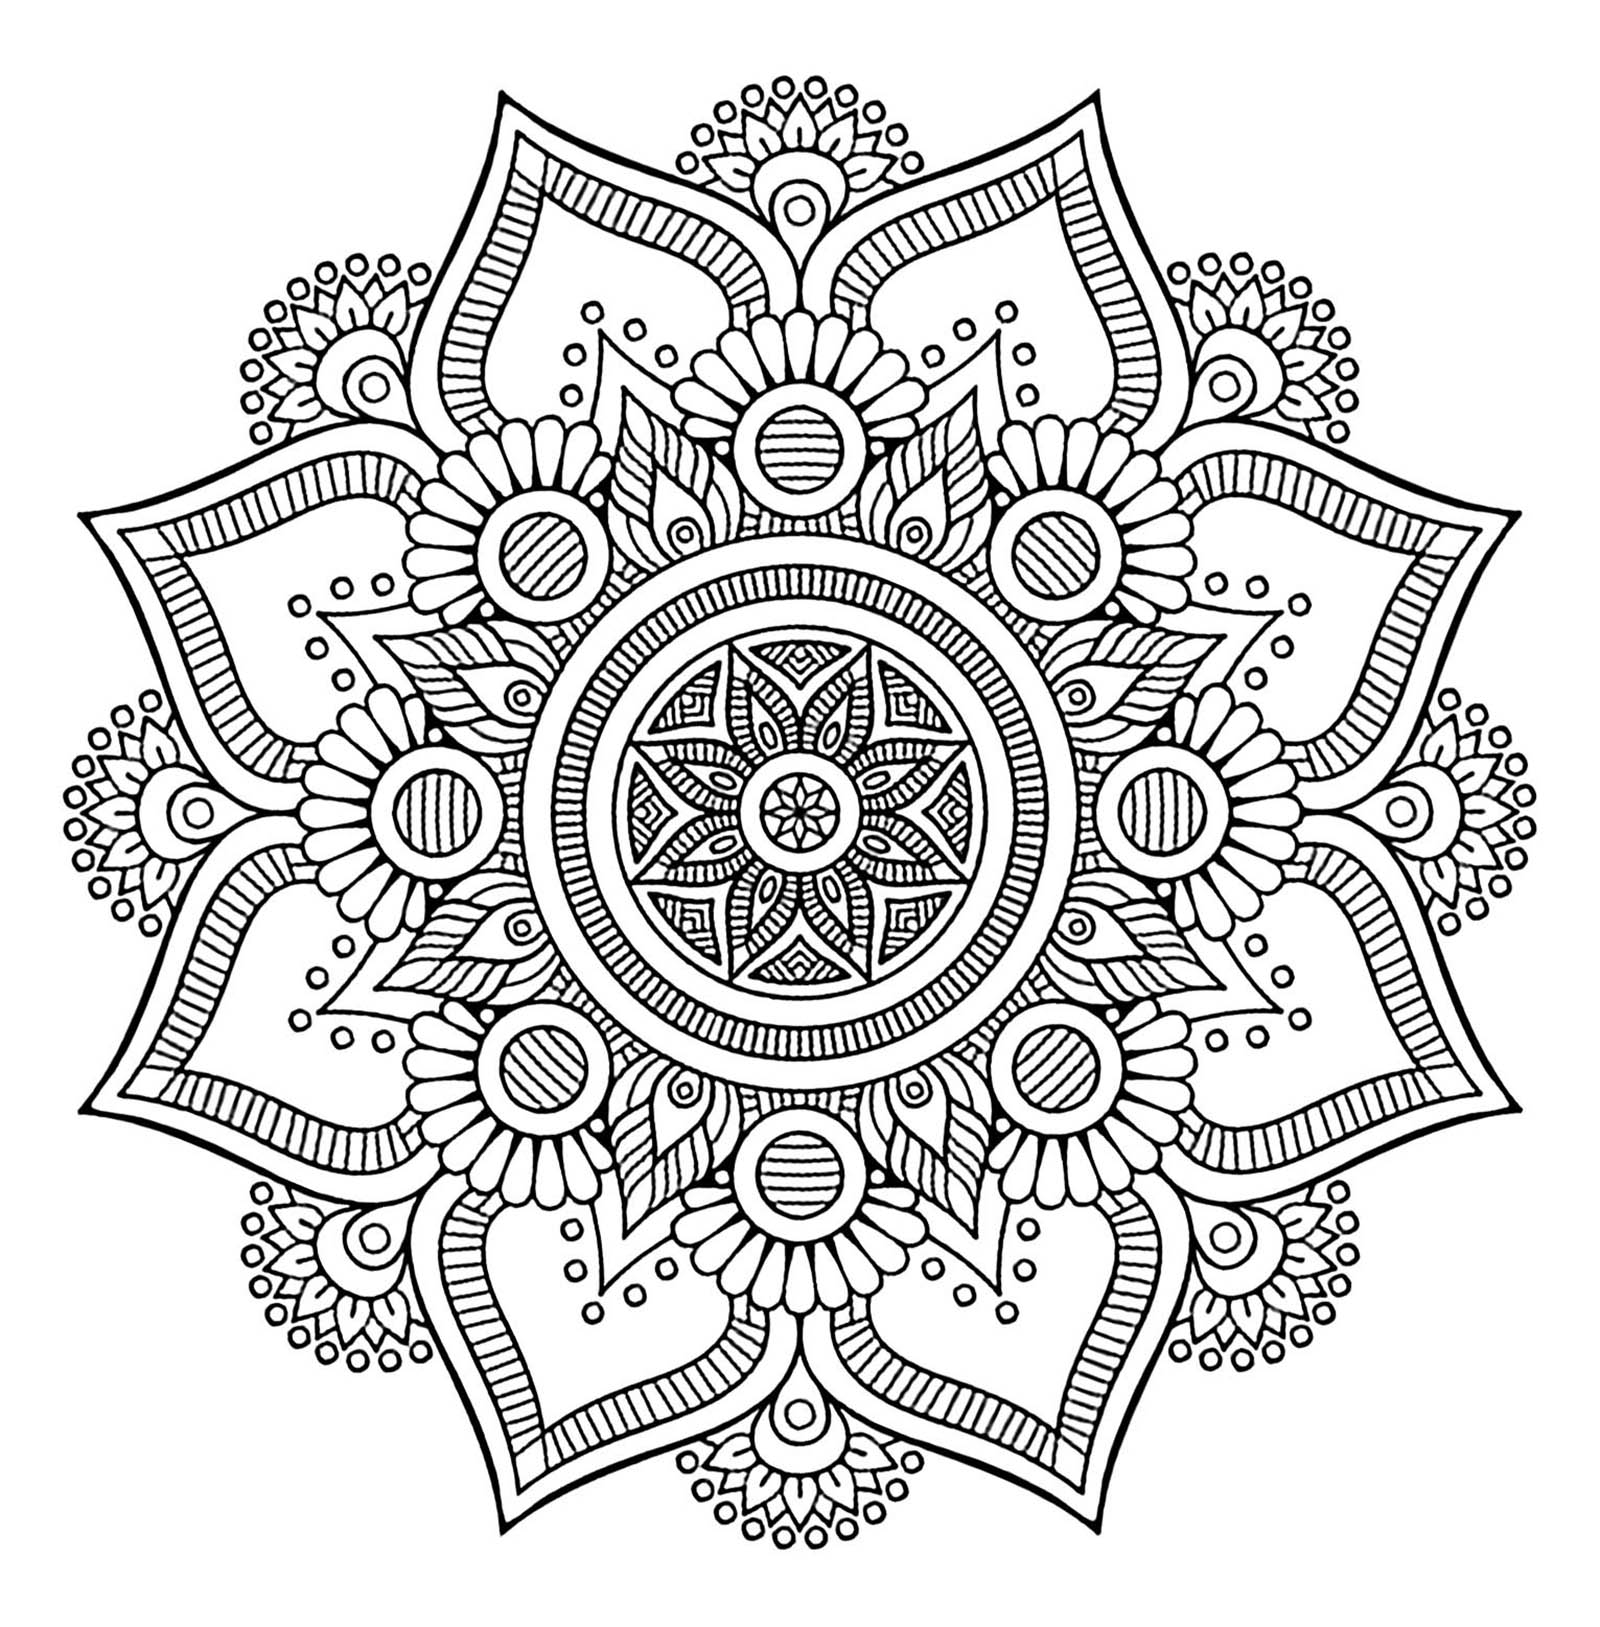 mandala coloring pages for adults free mandalas to color for children mandalas kids coloring pages pages mandala free coloring adults for